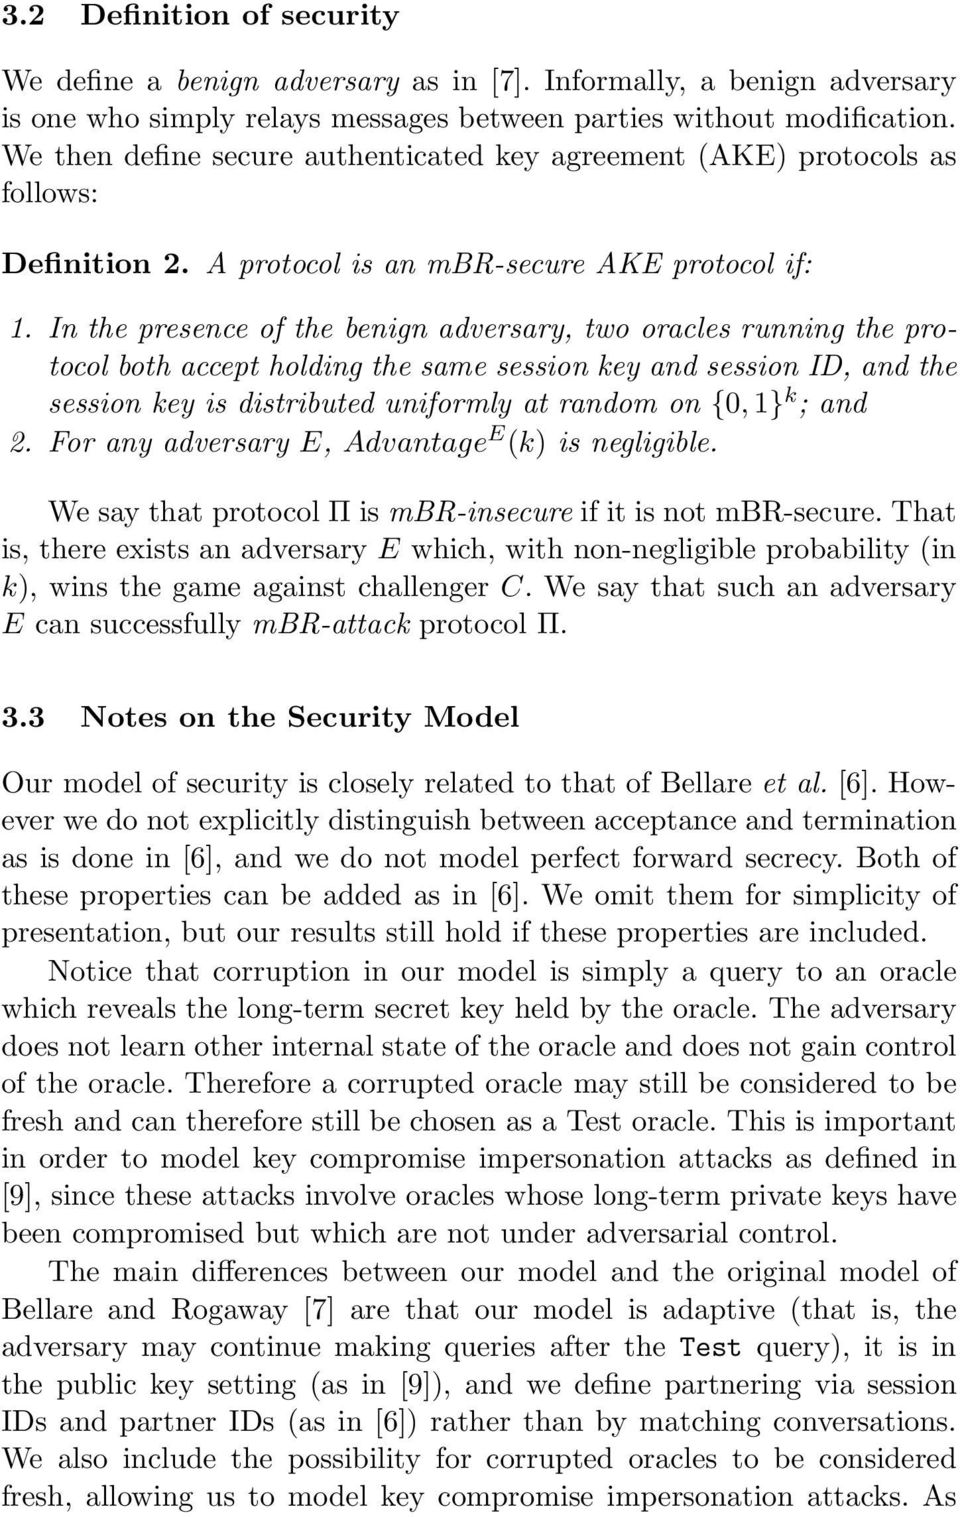 Modular Security Proofs For Key Agreement Protocols Pdf